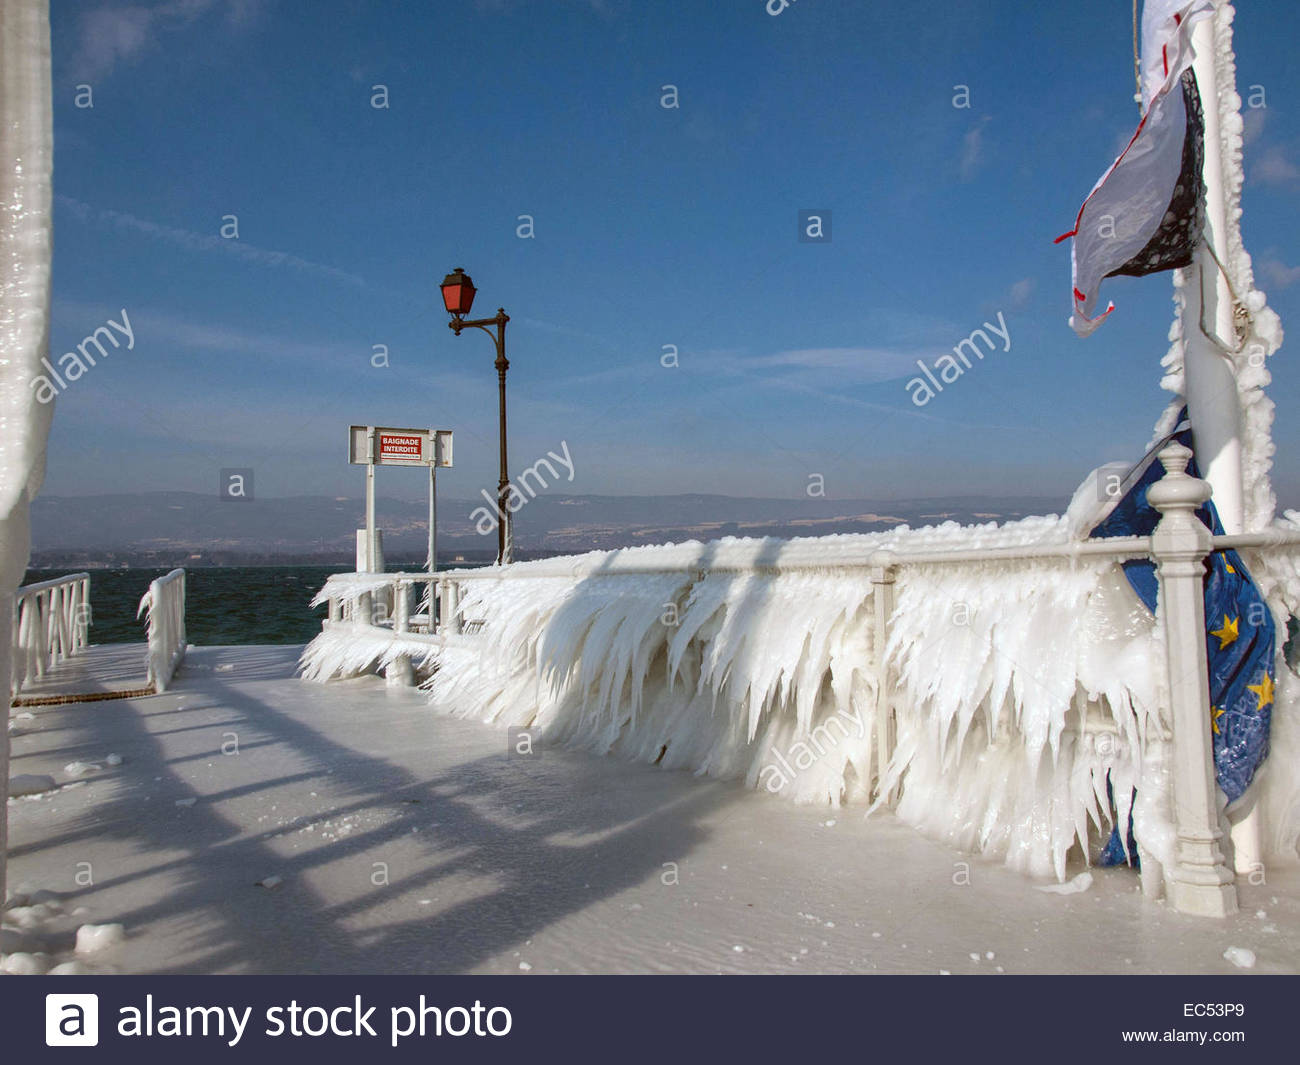 Haute-Savoie, lac Leman (Lake Geneva). Cold wind creating ice landscape, in winter. - Stock Image